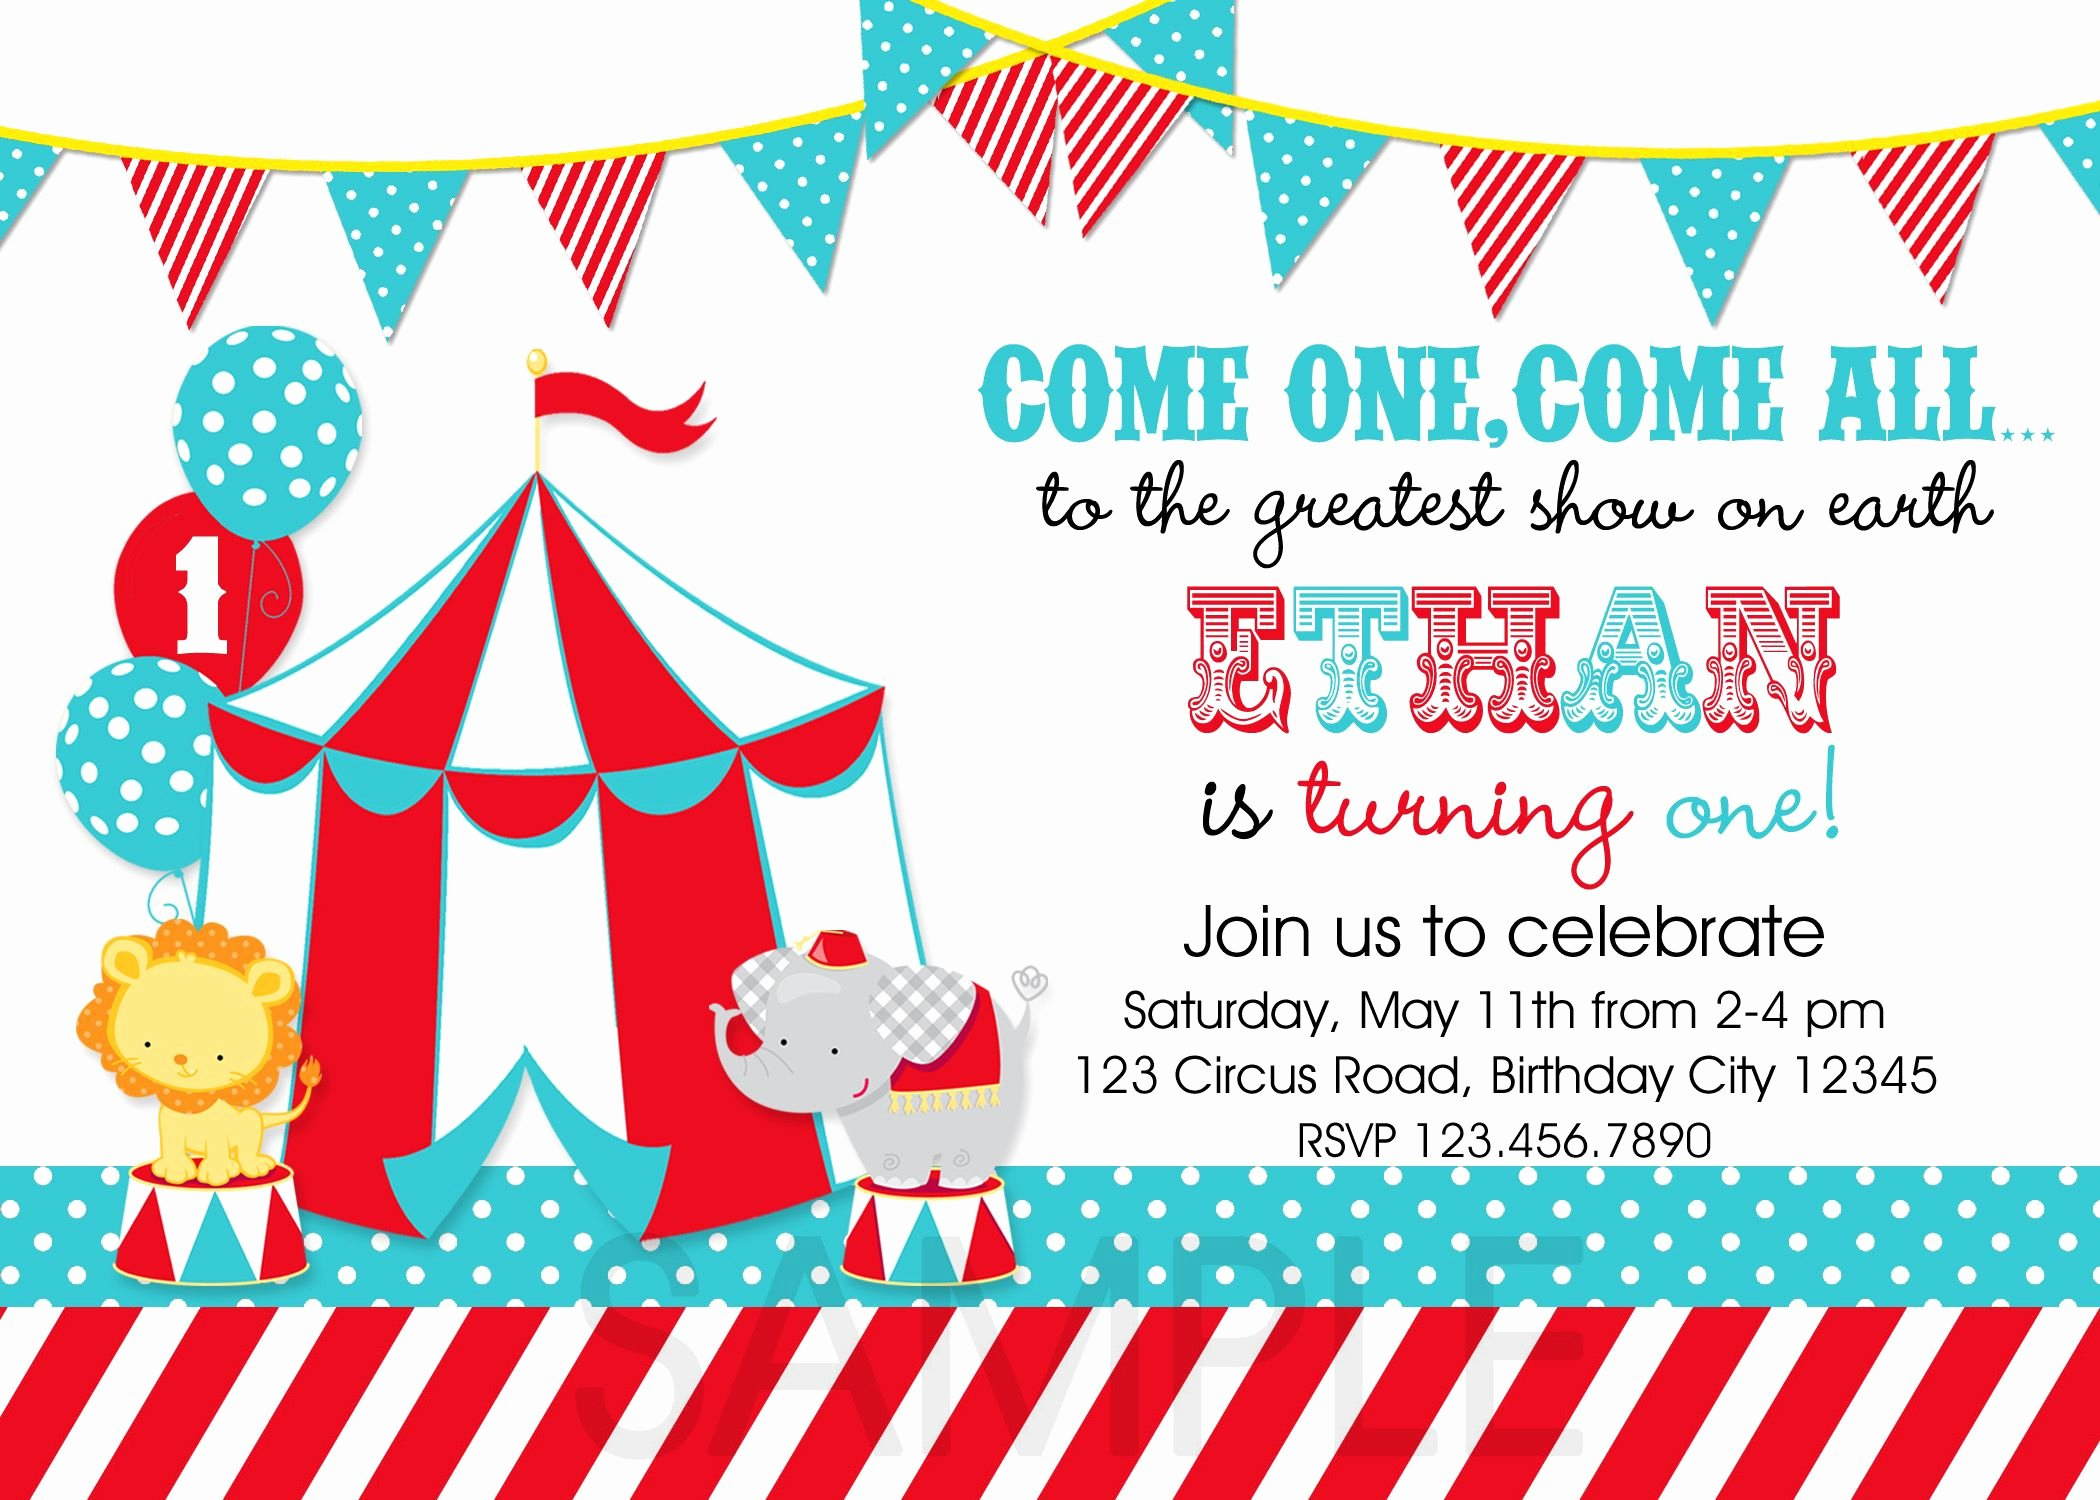 Carnival Invitation Template Free Awesome Circus Party Invitations Template 3zcfy9xw